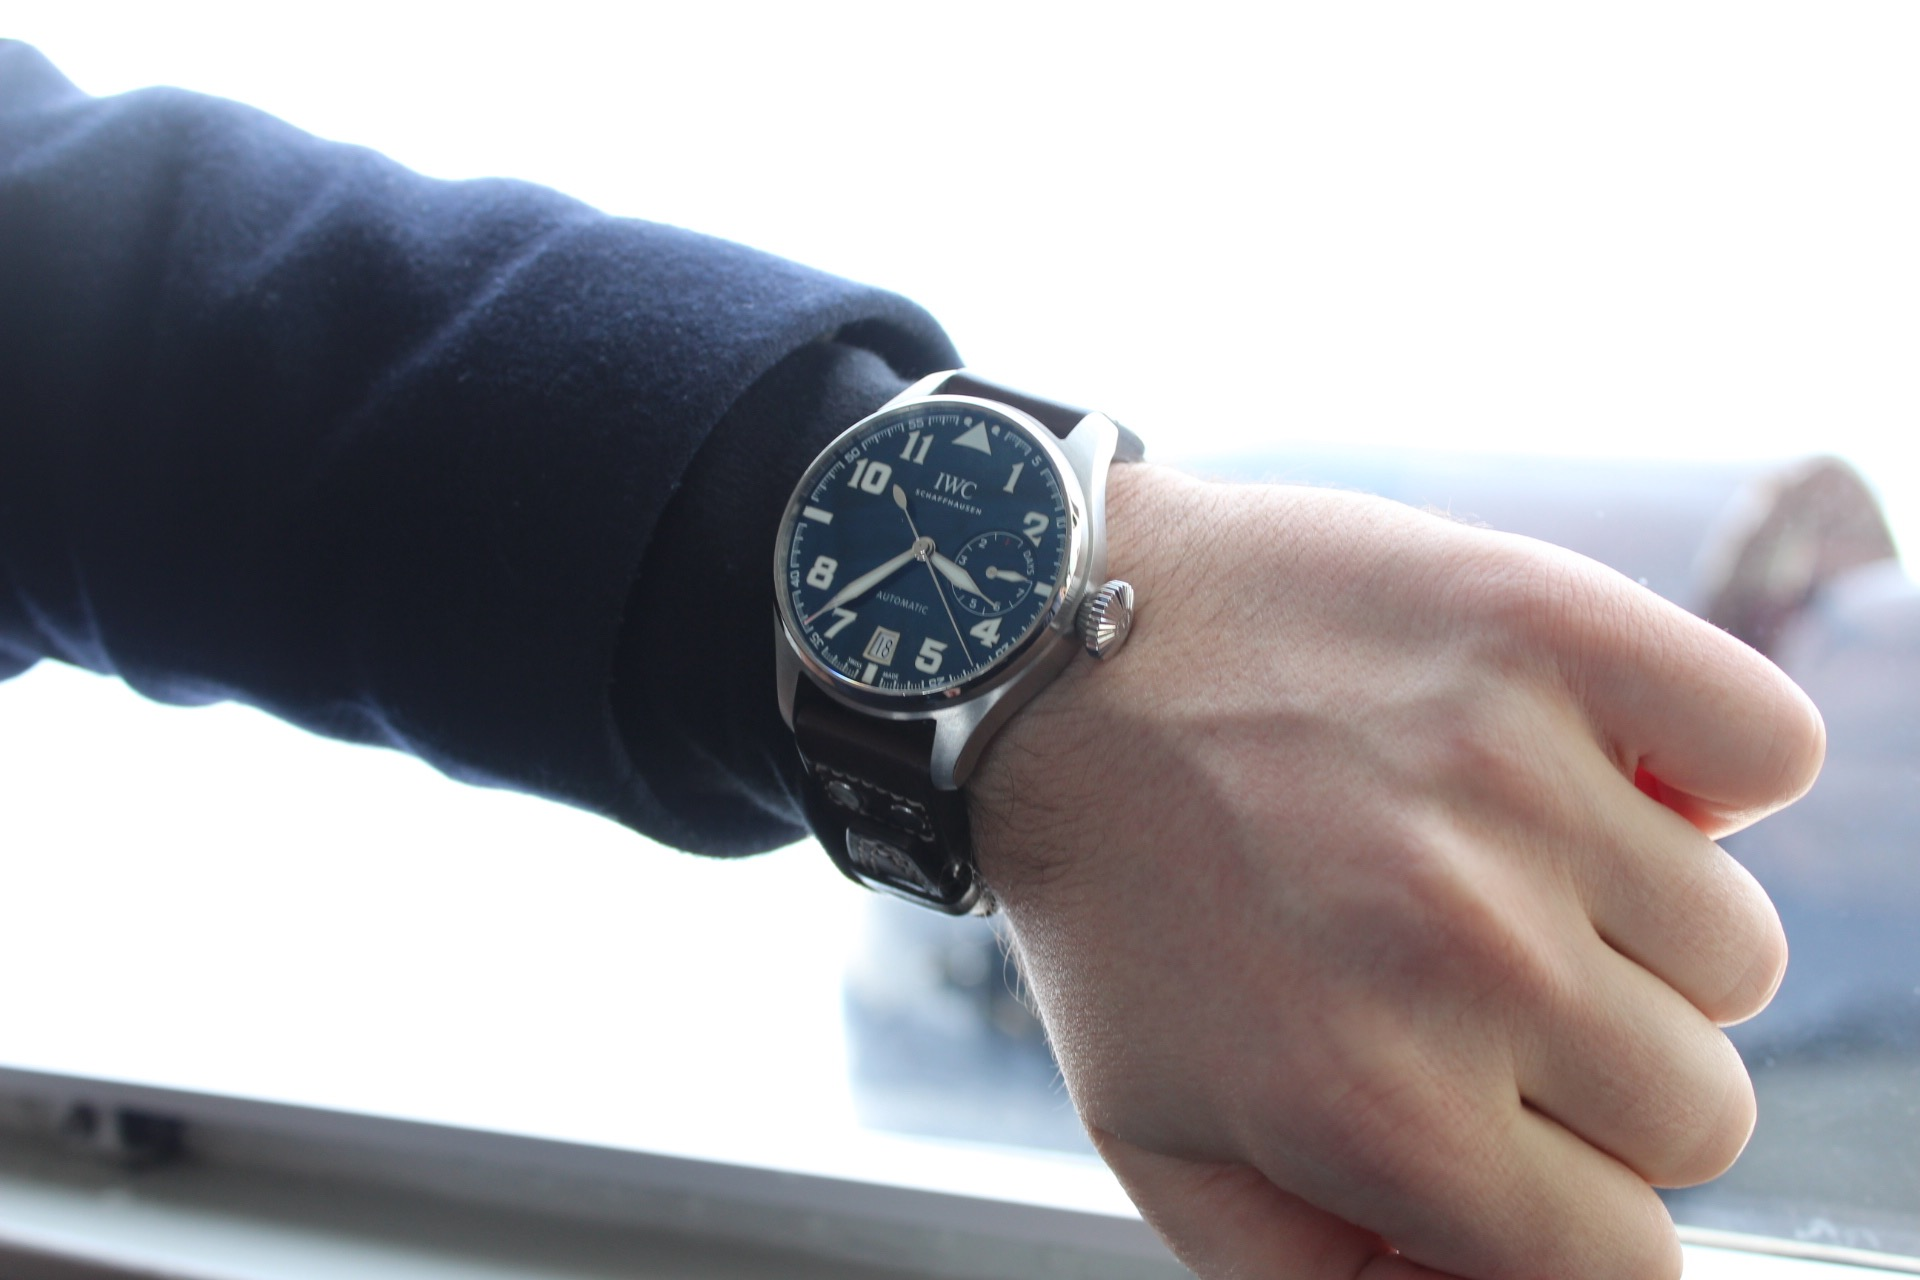 Come fly with us – on-board JU-52 - IWC Pilot's Watches - SIHH 2016 - 10